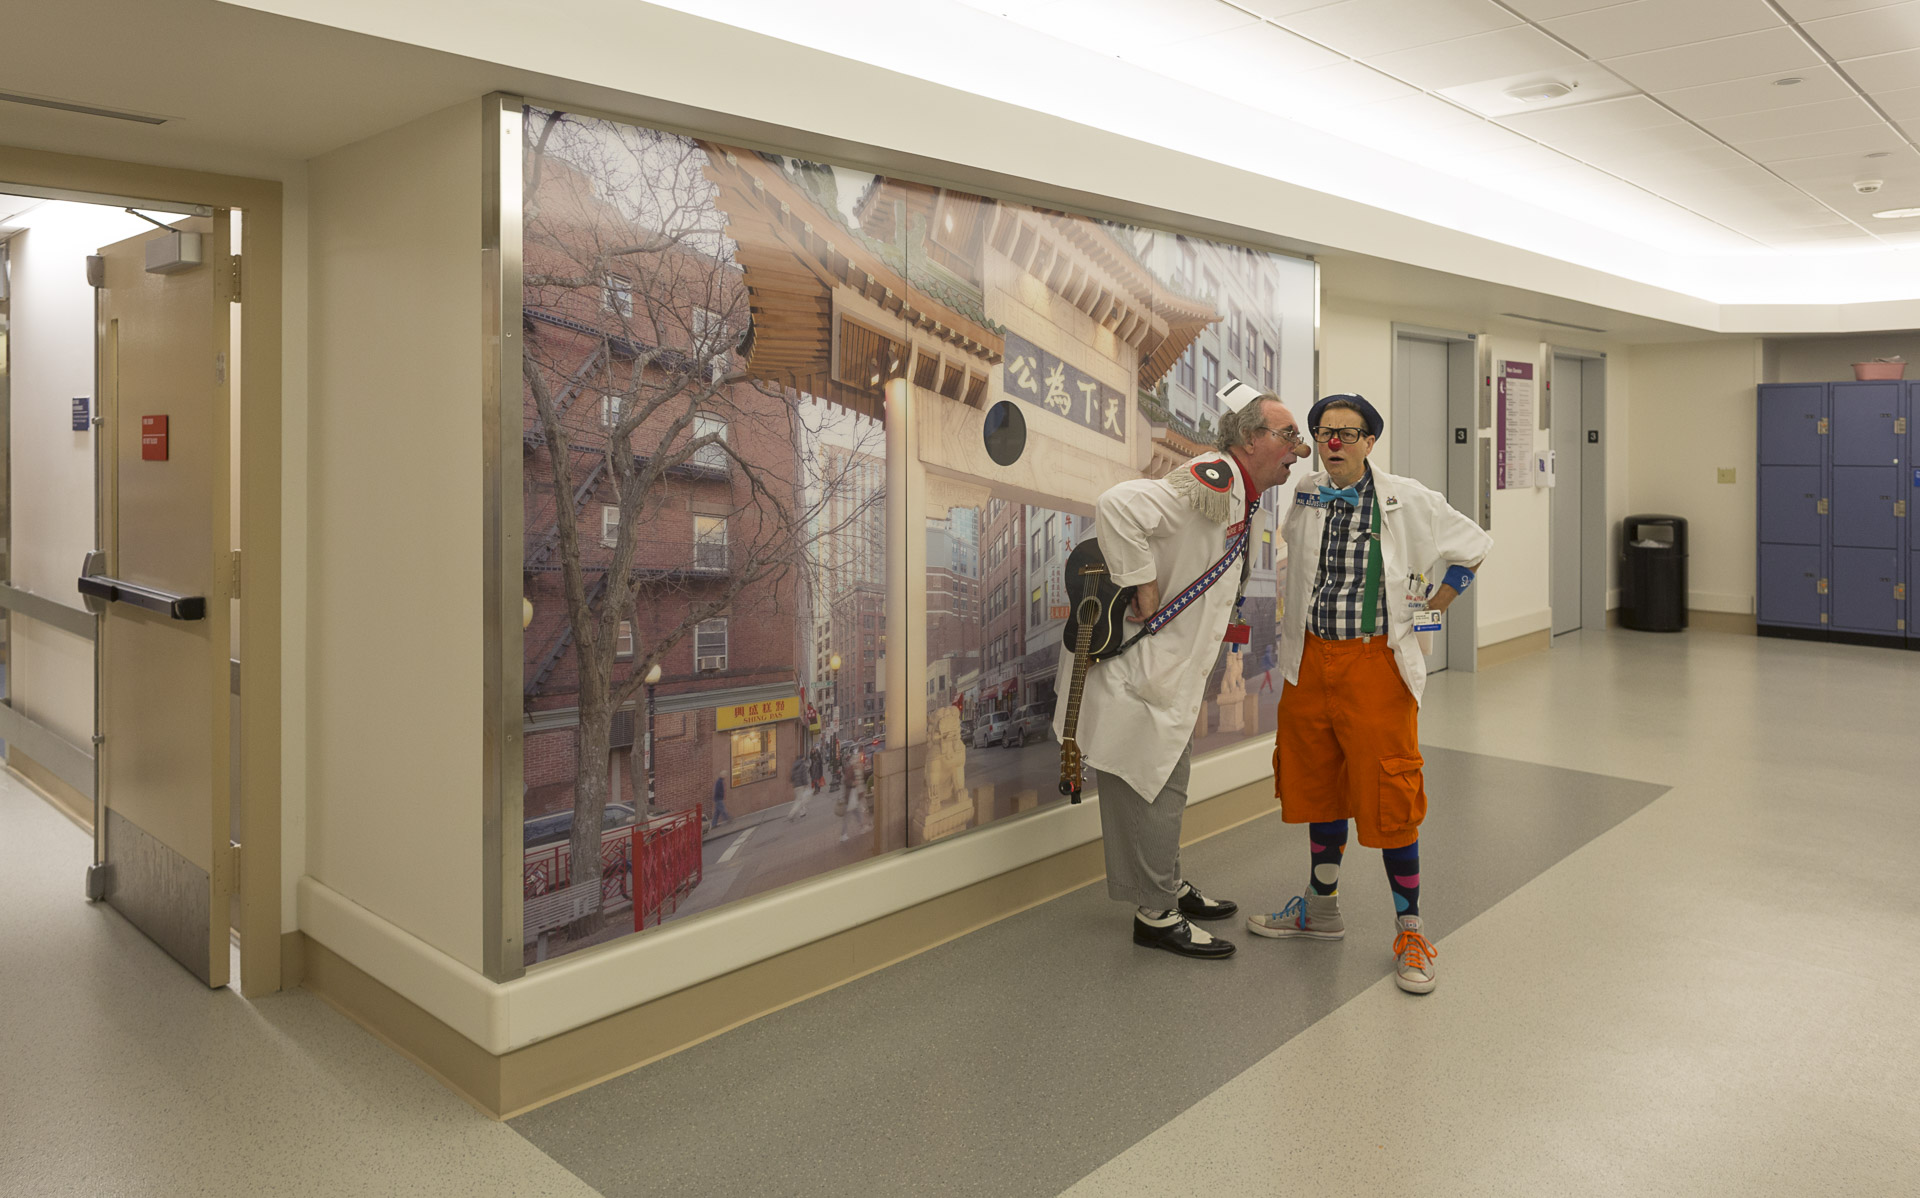 Discovery murals at Children's Hospital, Longwood, Boston, MA